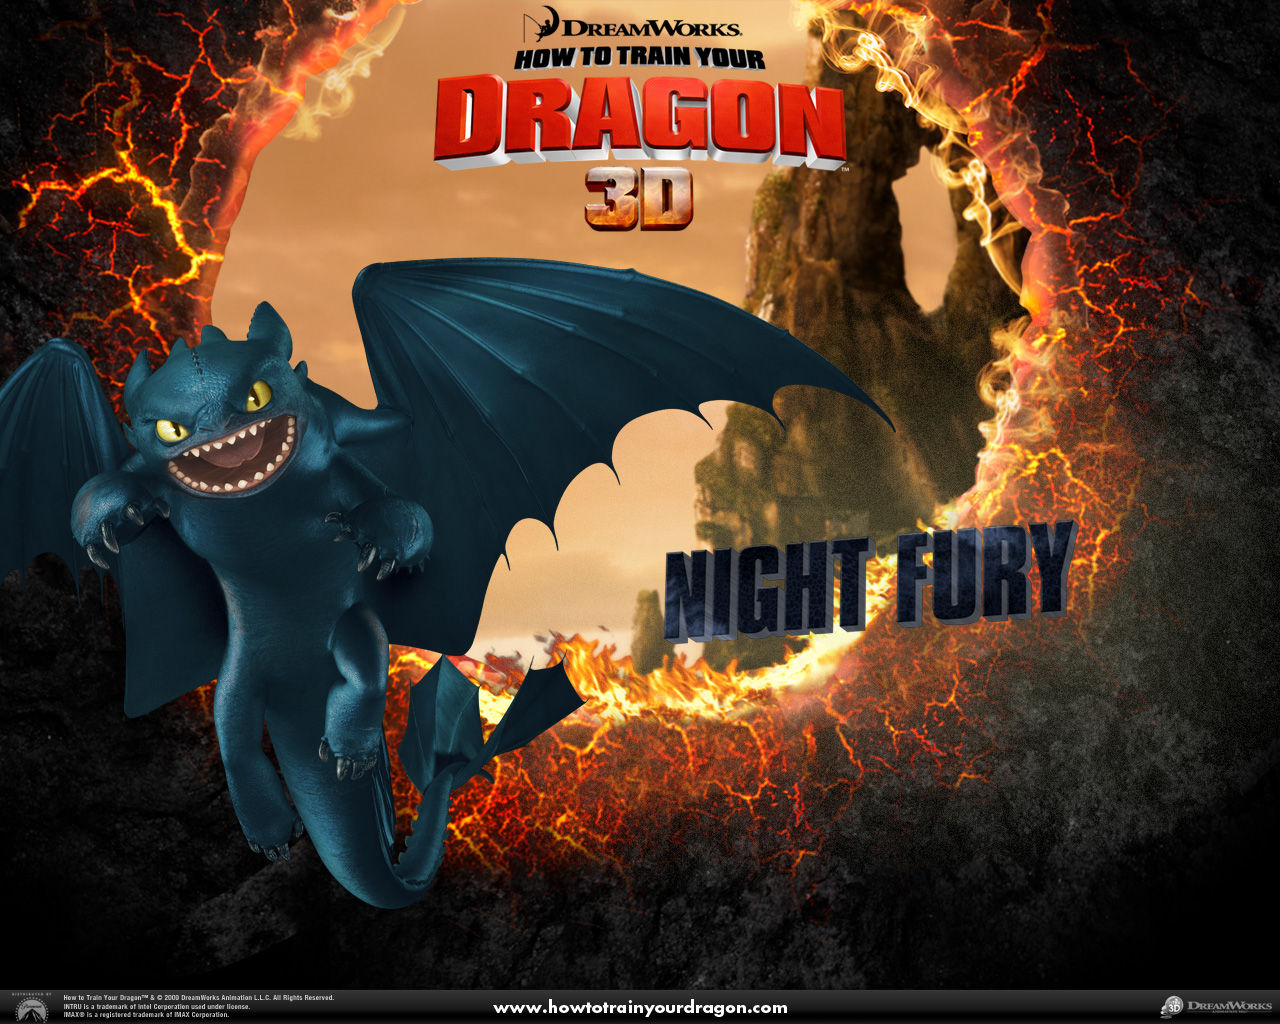 Free wallpaper hd how to train your dragon wallpaper - How to train your dragon hd download ...